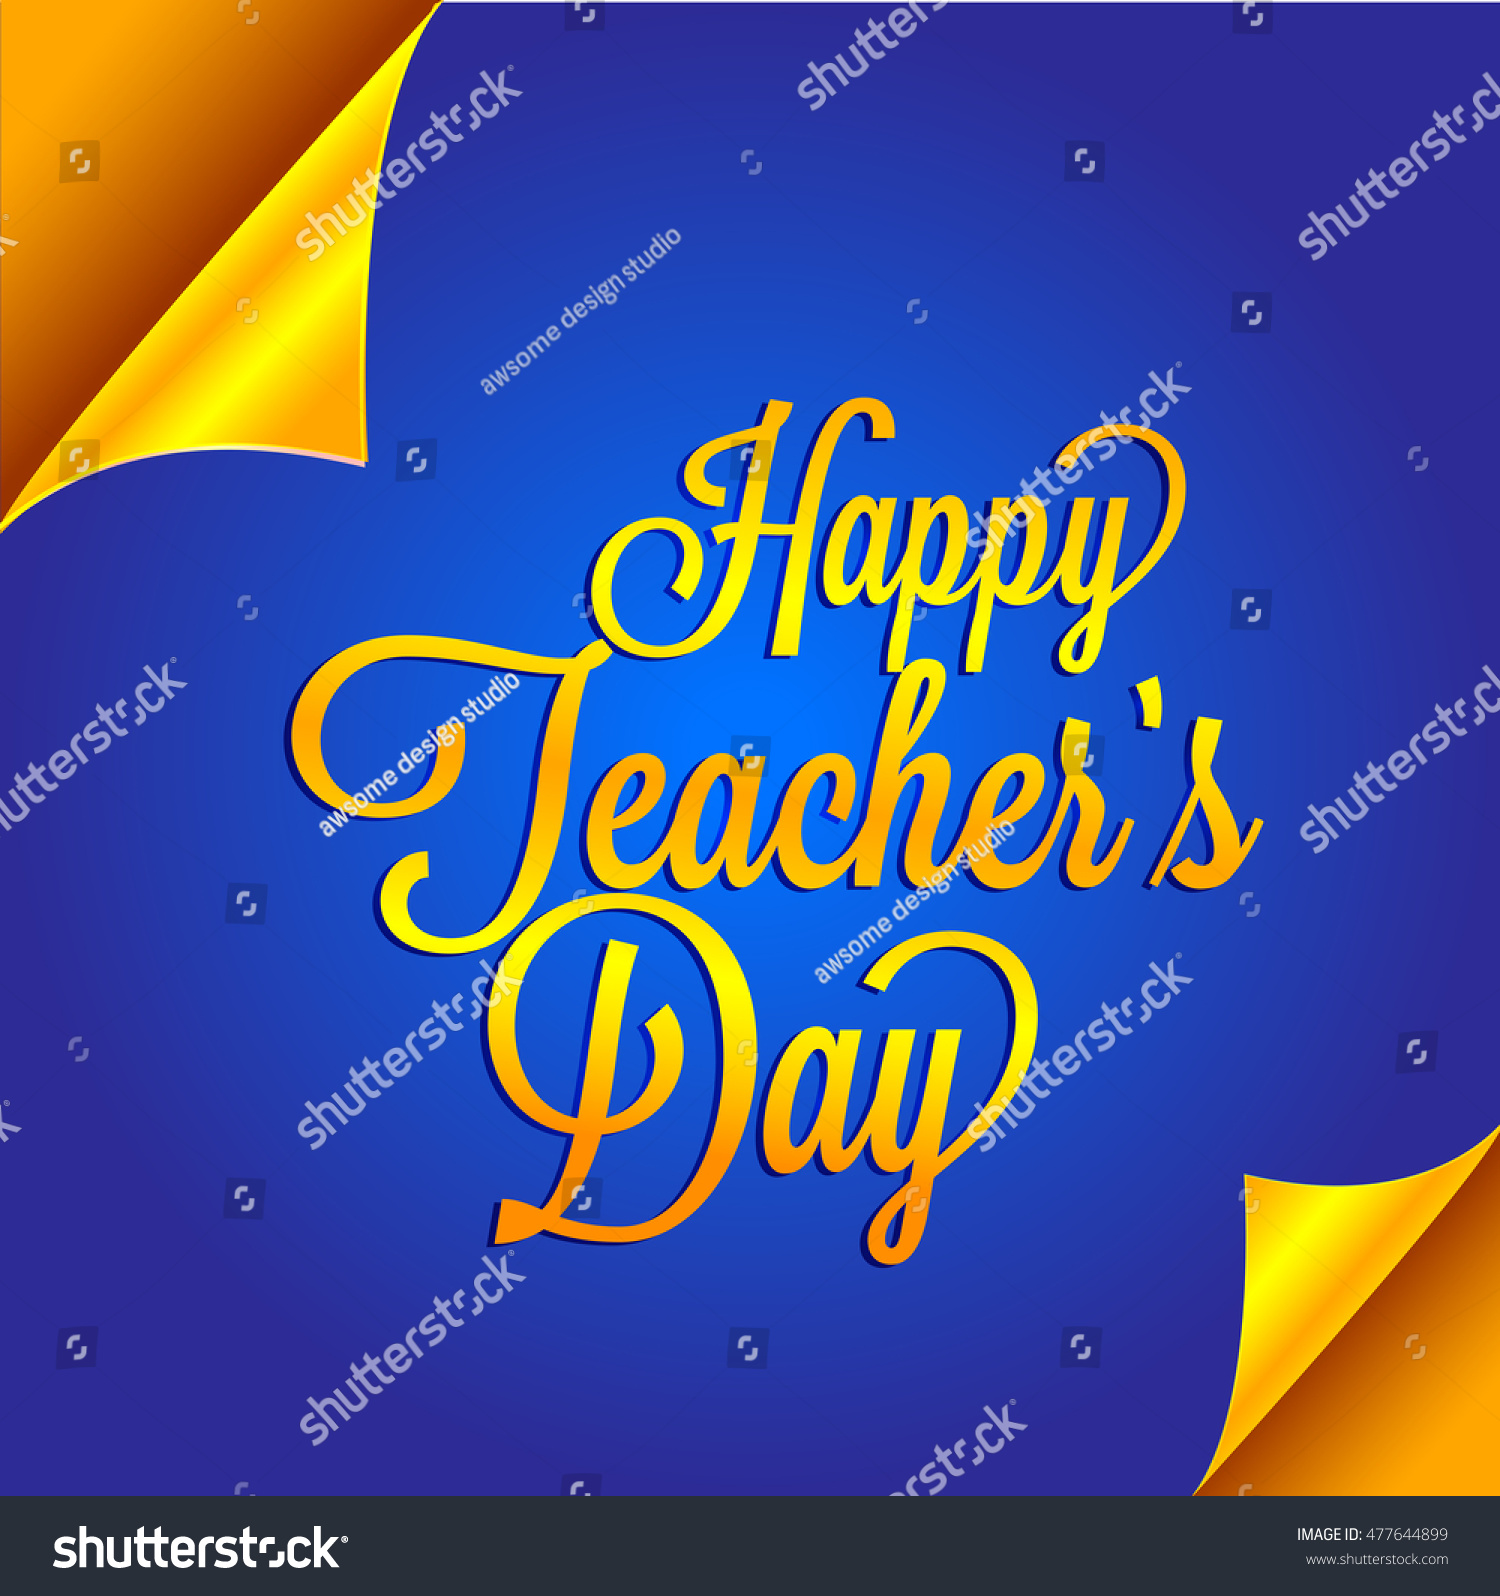 Creative greeting card teachers day celebration stock vector creative greeting card of teachers day celebration kristyandbryce Image collections